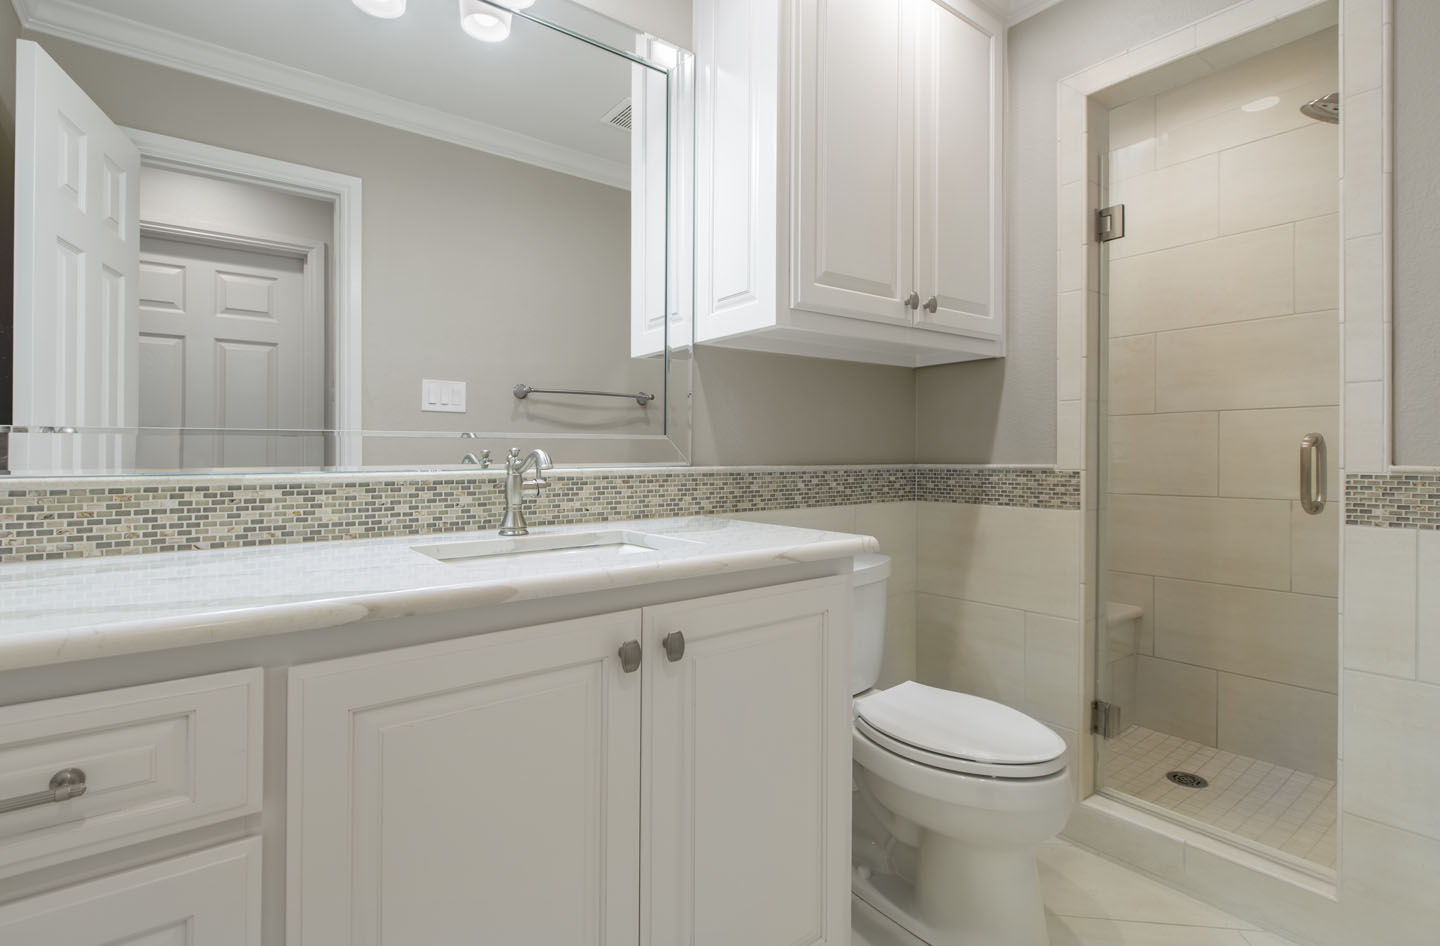 home remodel - guest bathroom